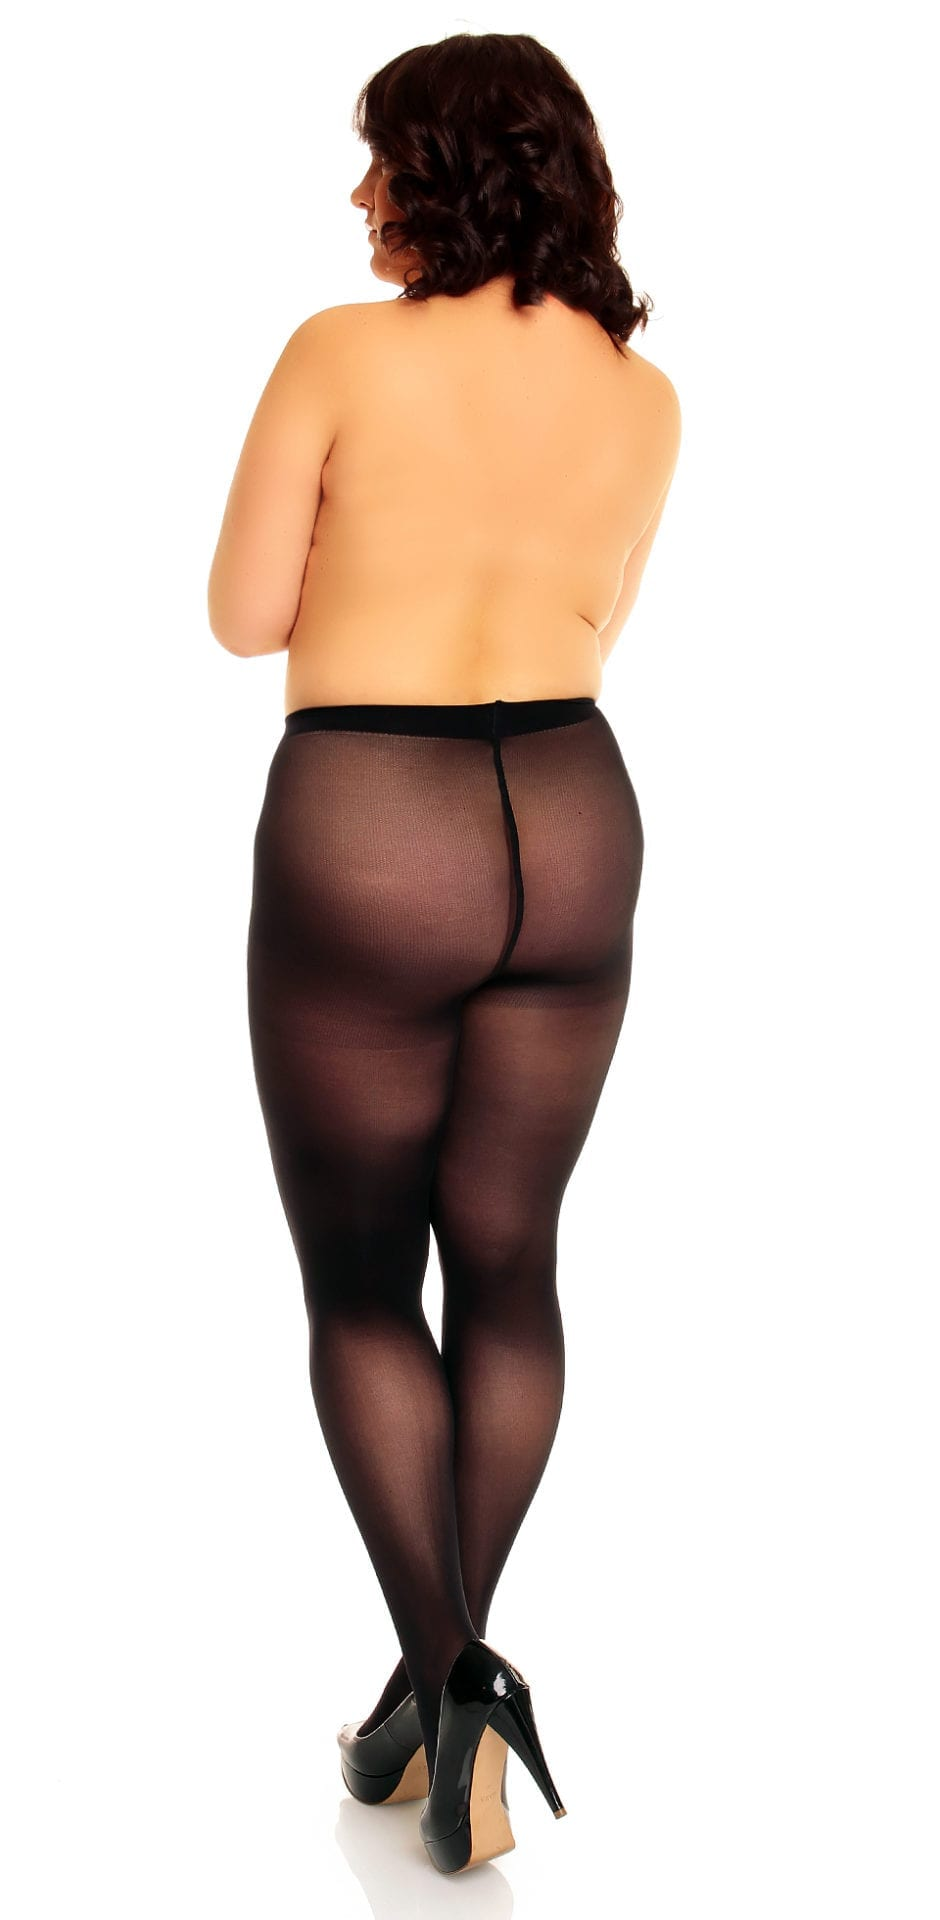 Plus size model wearing Glamory microstar 50 tights in color black Back view